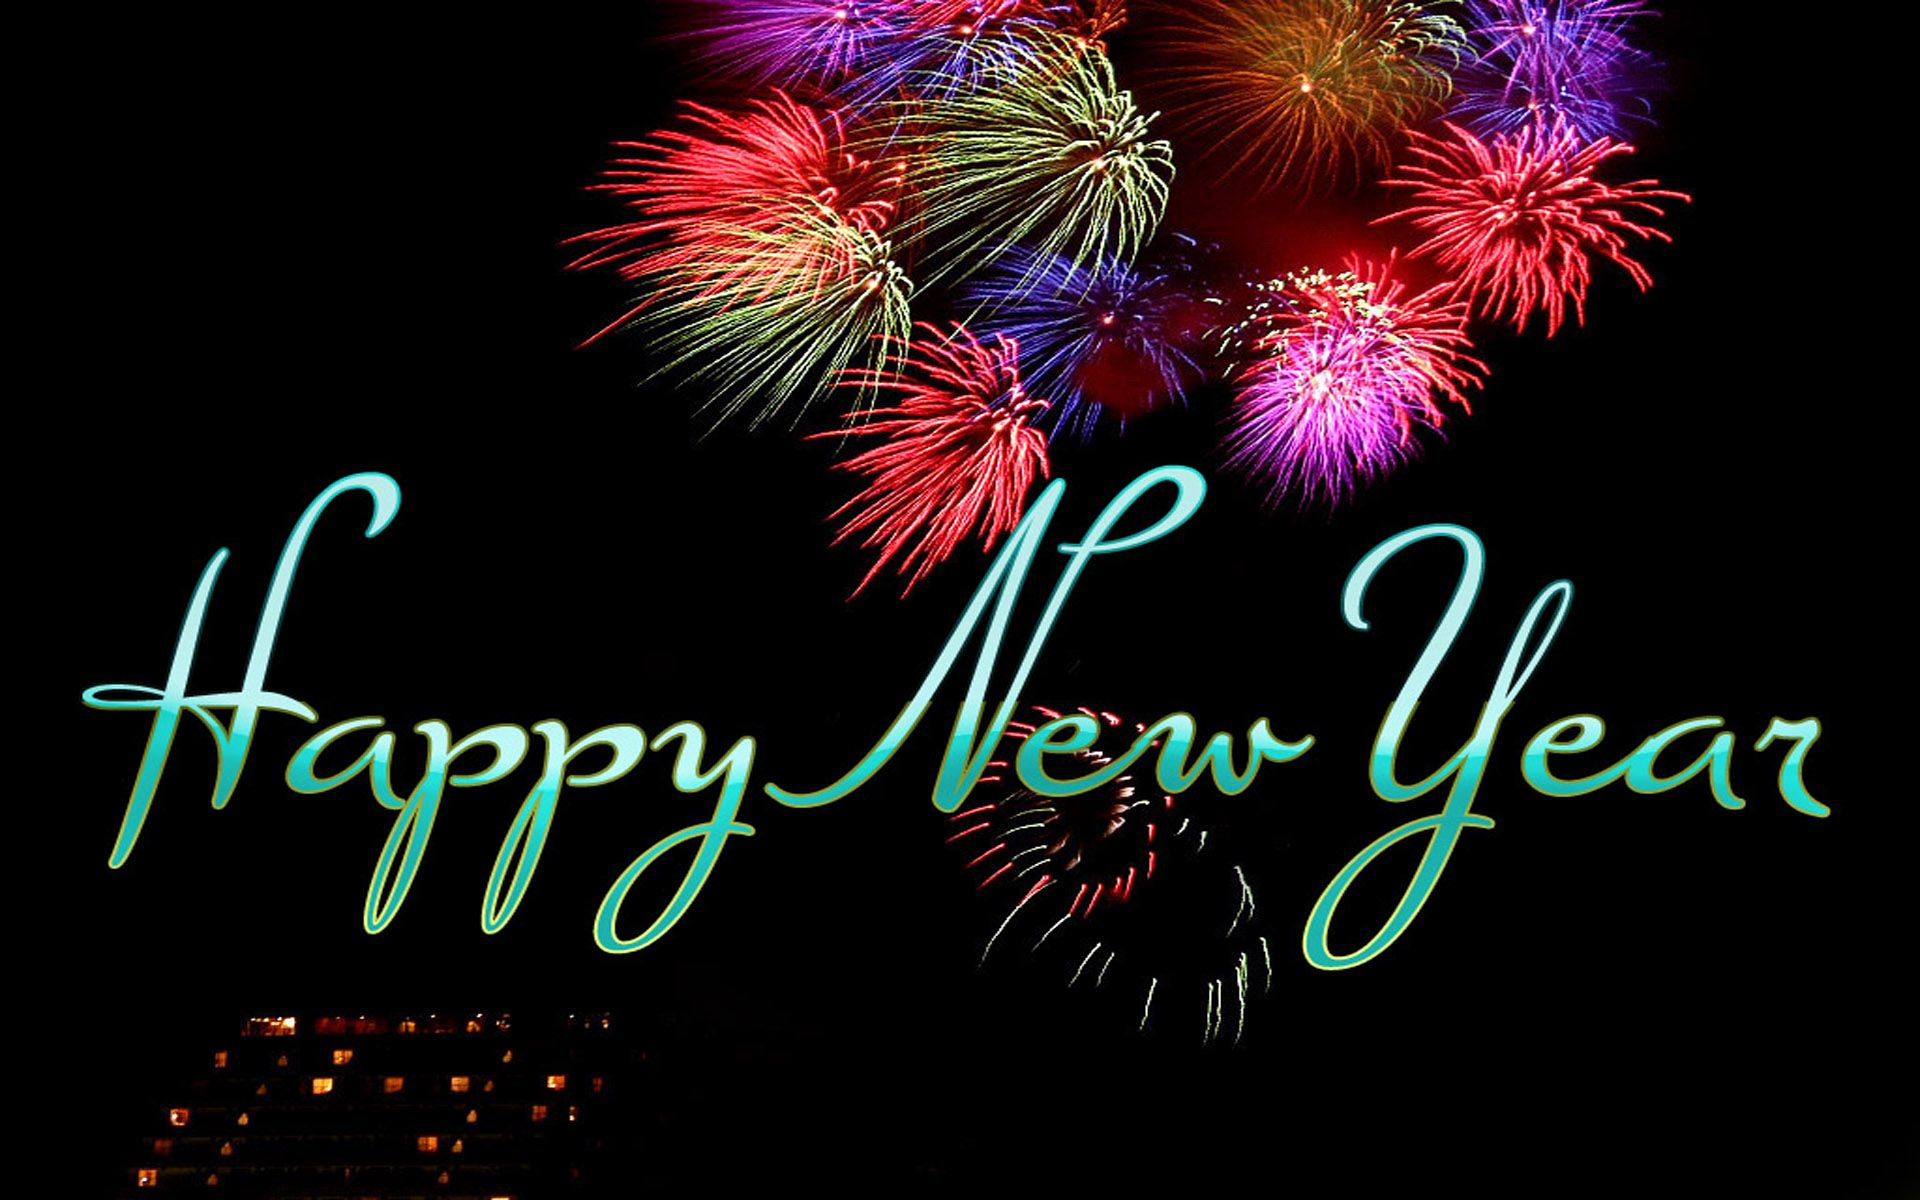 Top 10+ Happy New Year 2019 Image Pictures Wallpapers for Facebook